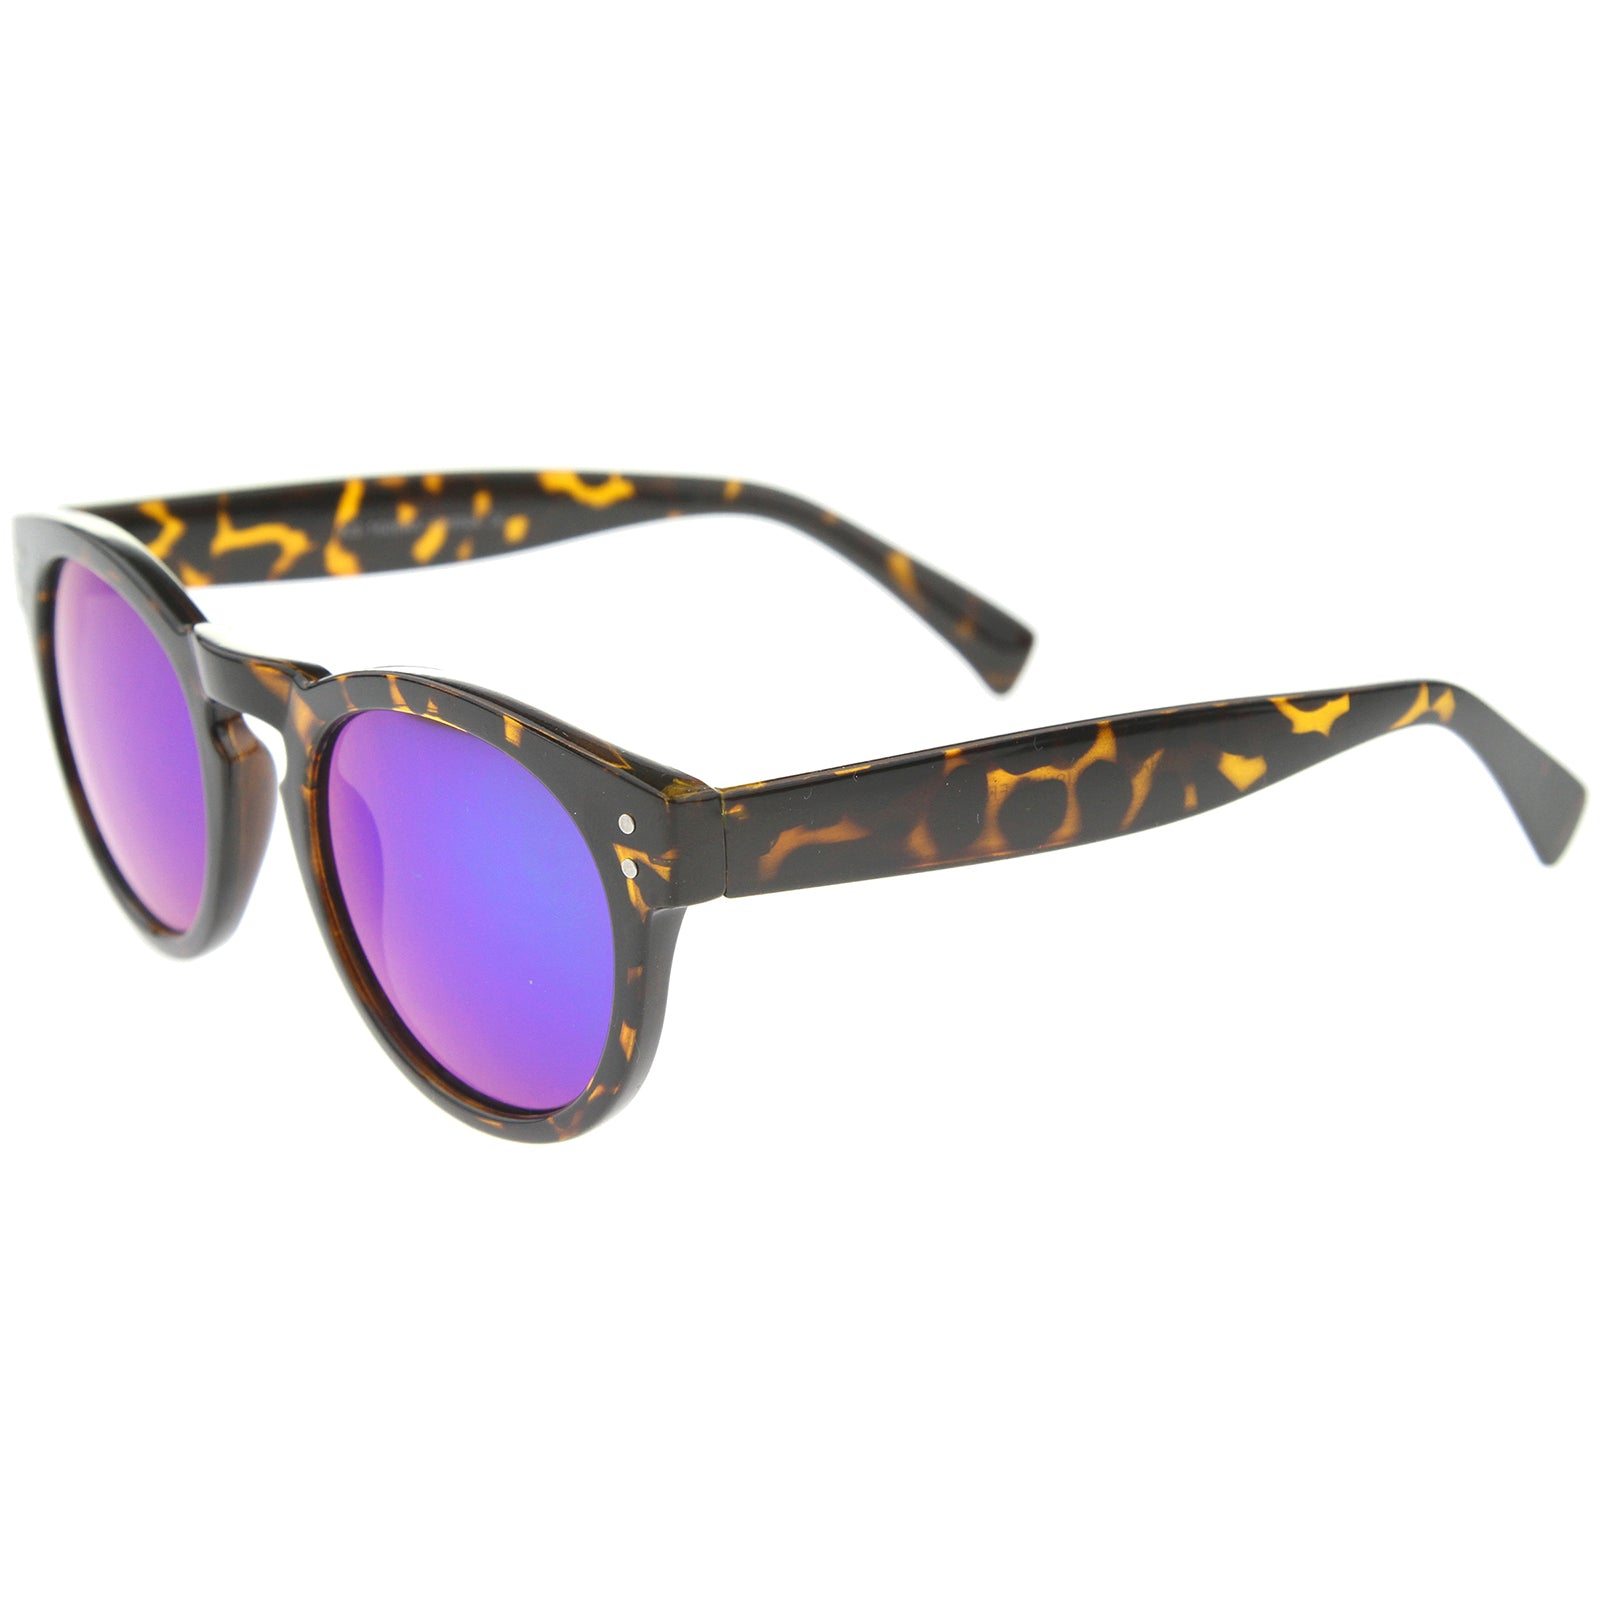 Womens Horn Rimmed Sunglasses With UV400 Protected Mirrored Lens - sunglass.la - 3